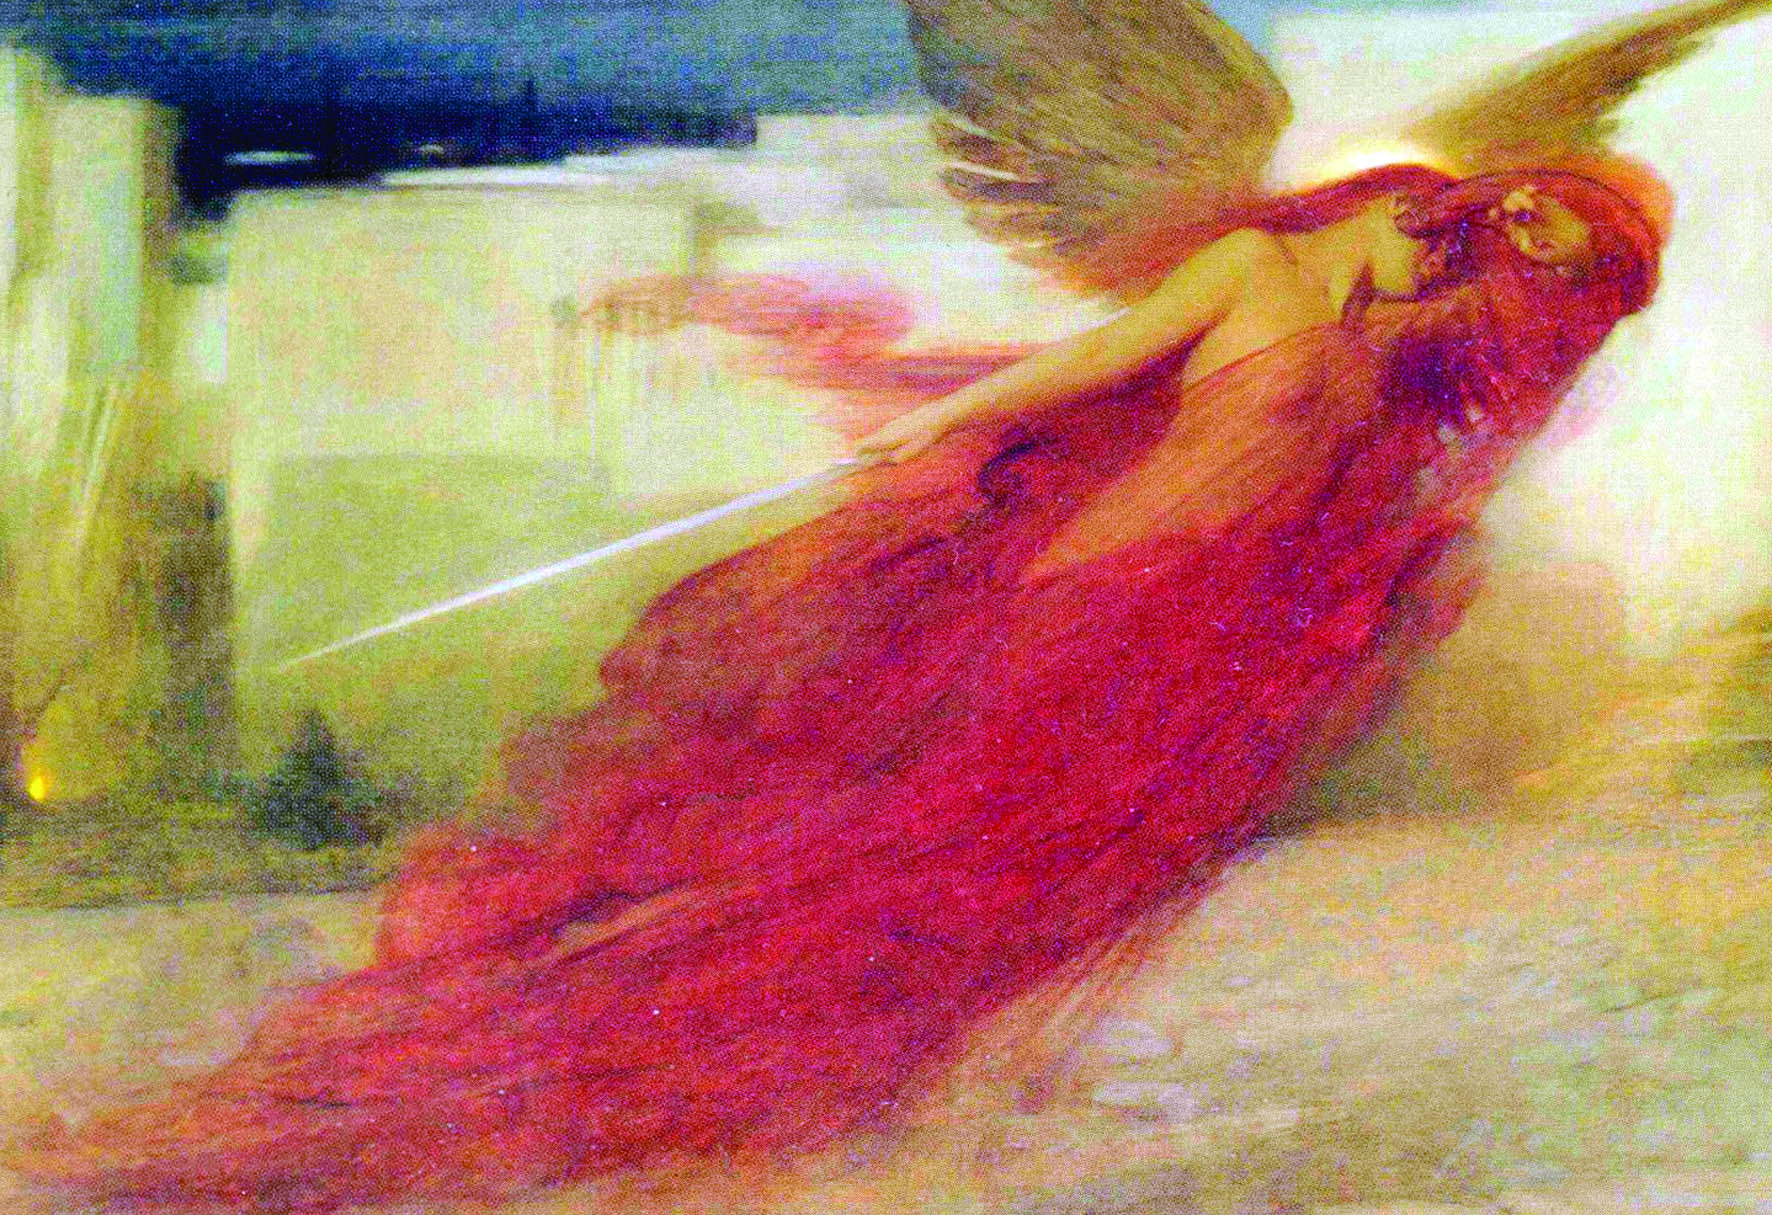 7 ARTHUR HACKER And There was a Great Cry in Egypt LANGELO STERMINATORE